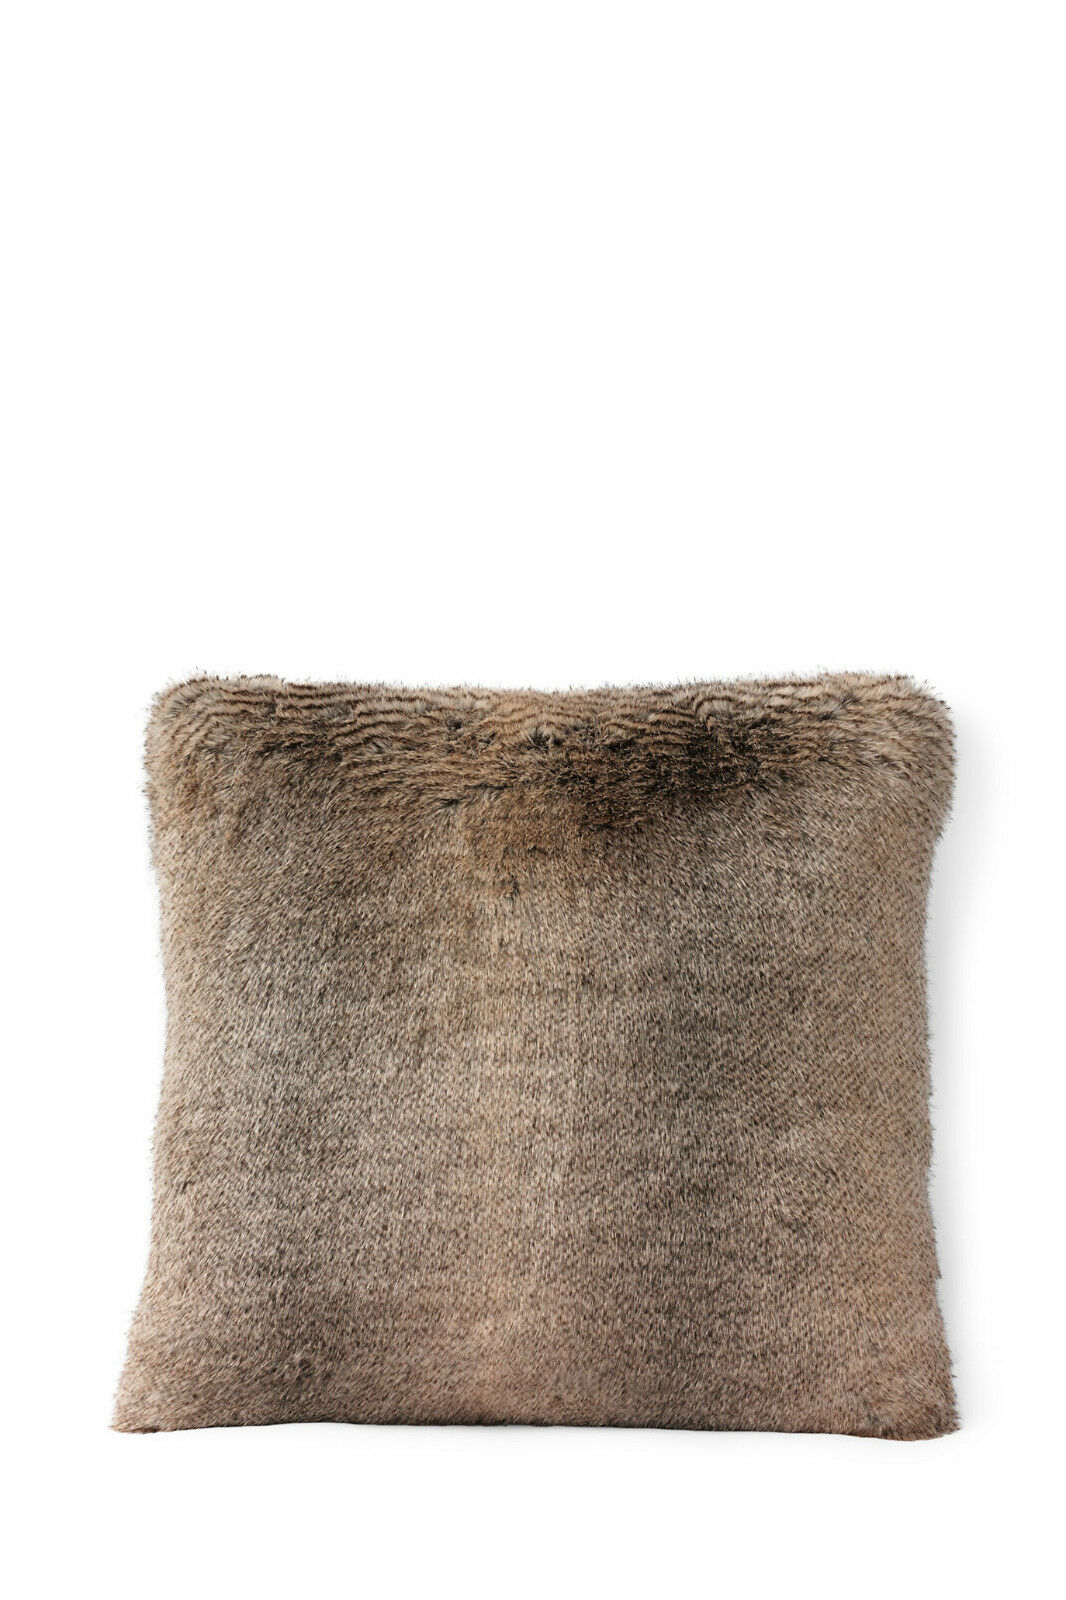 Two Brand New in Pkg Lands End Faux Mink Fur Pillows 20 X 20